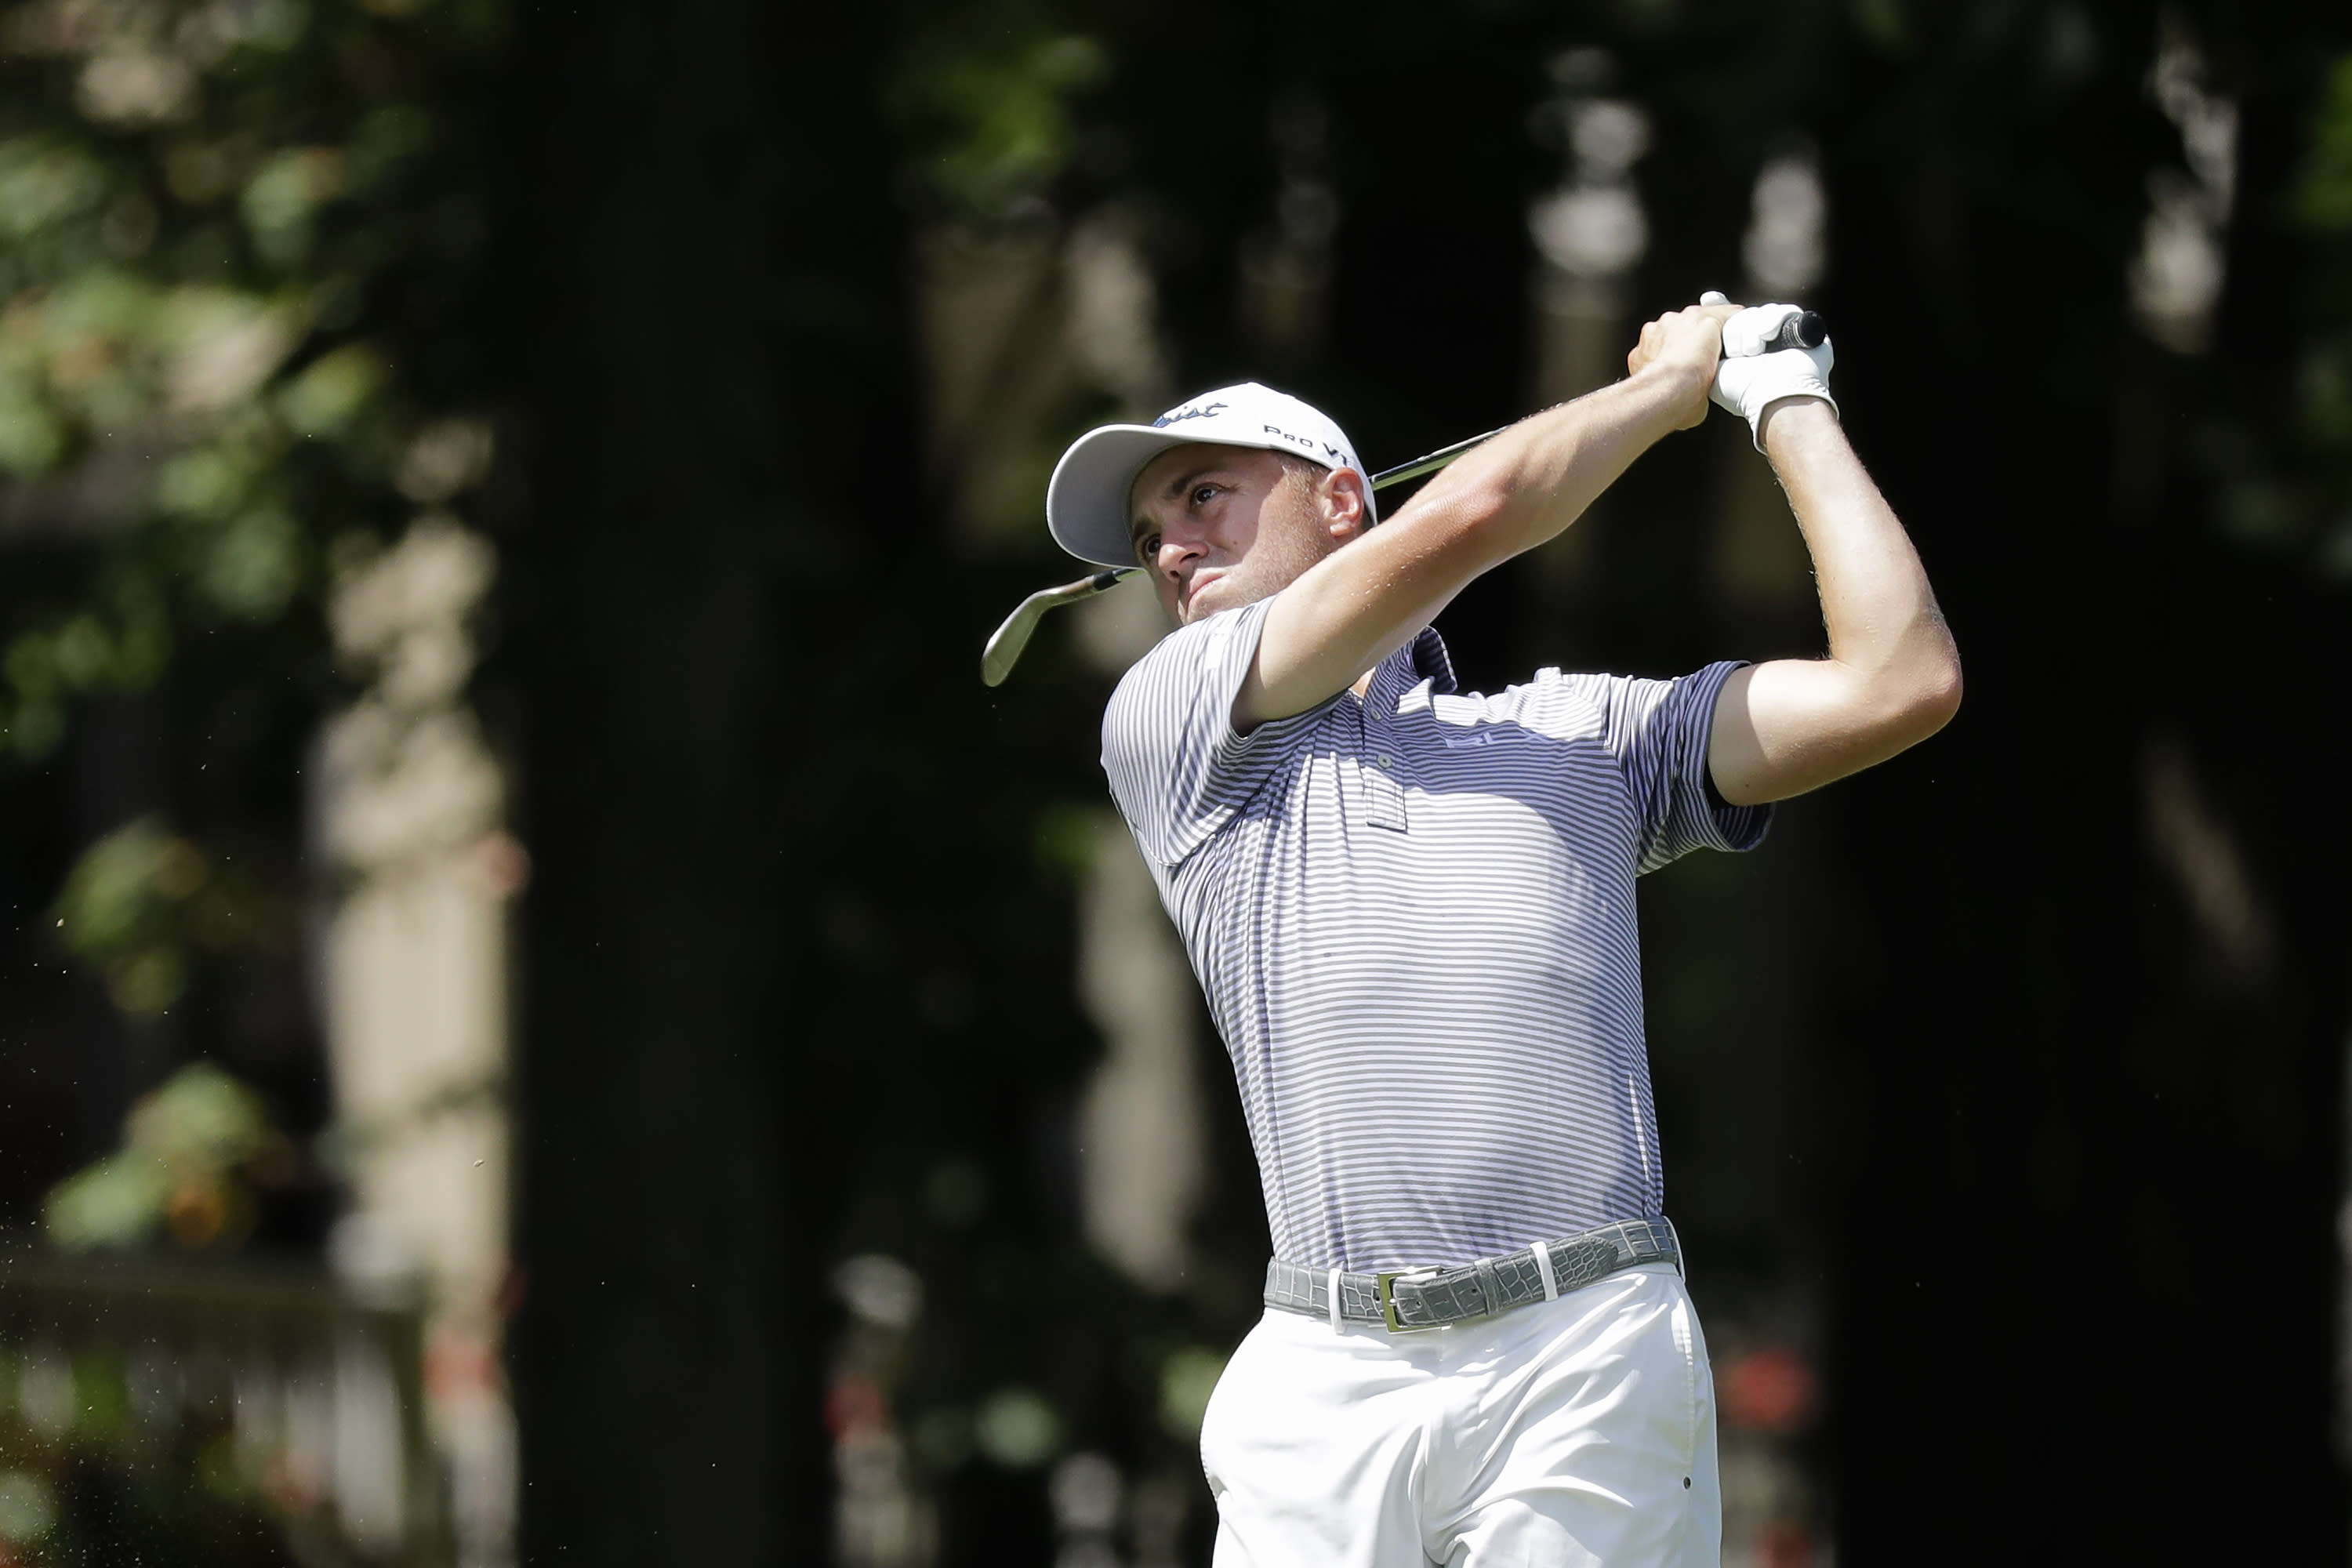 Justin Thomas hits toward the ninth green during the second round of the Memorial golf tournament, Friday, July 17, 2020, in Dublin, Ohio. (AP Photo/Darron Cummings)